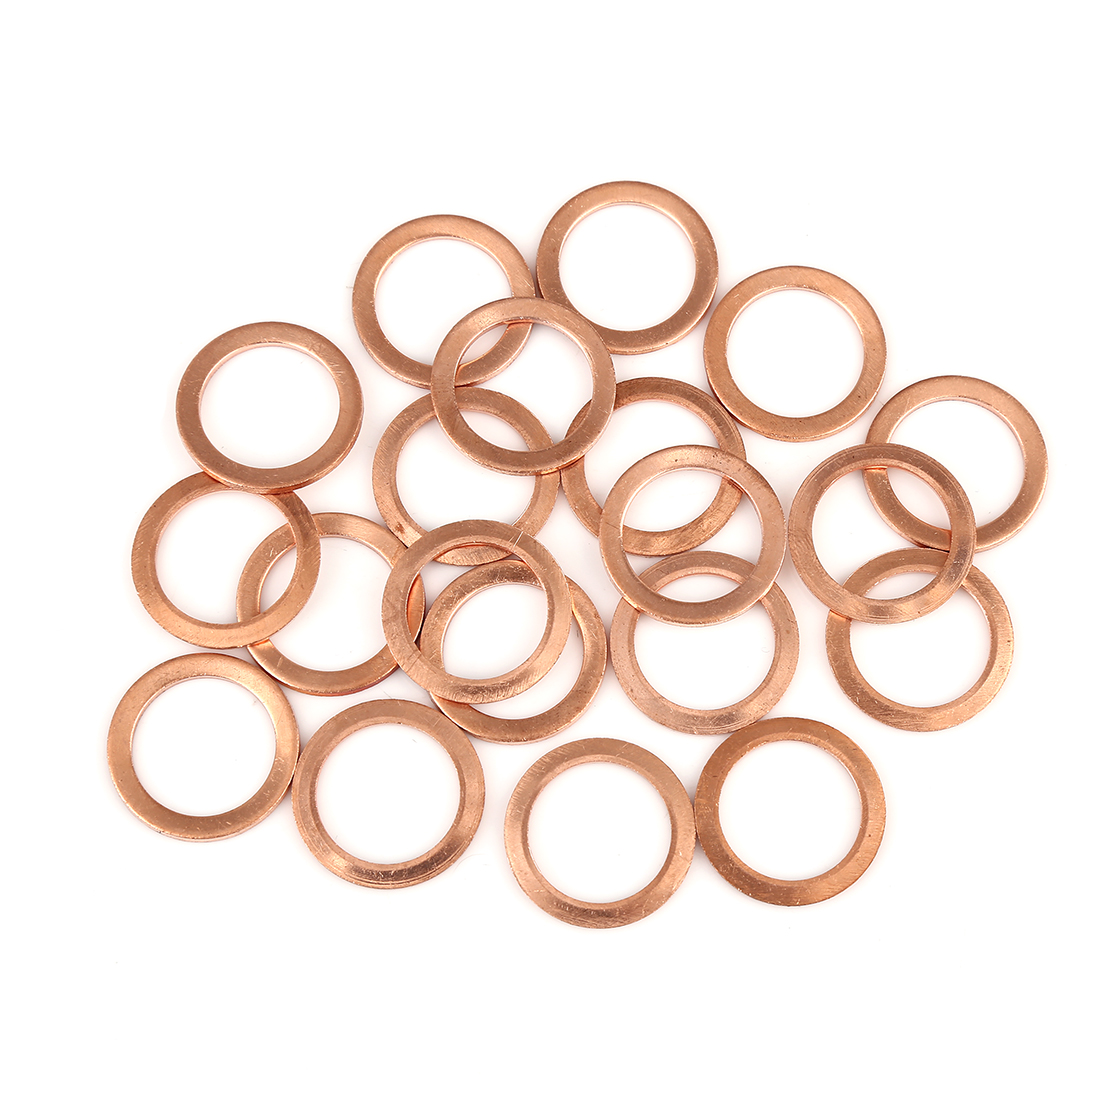 20pcs Copper Washer Flat Sealing Gasket Ring Spacer for Car 18 x 25 x 1.5mm